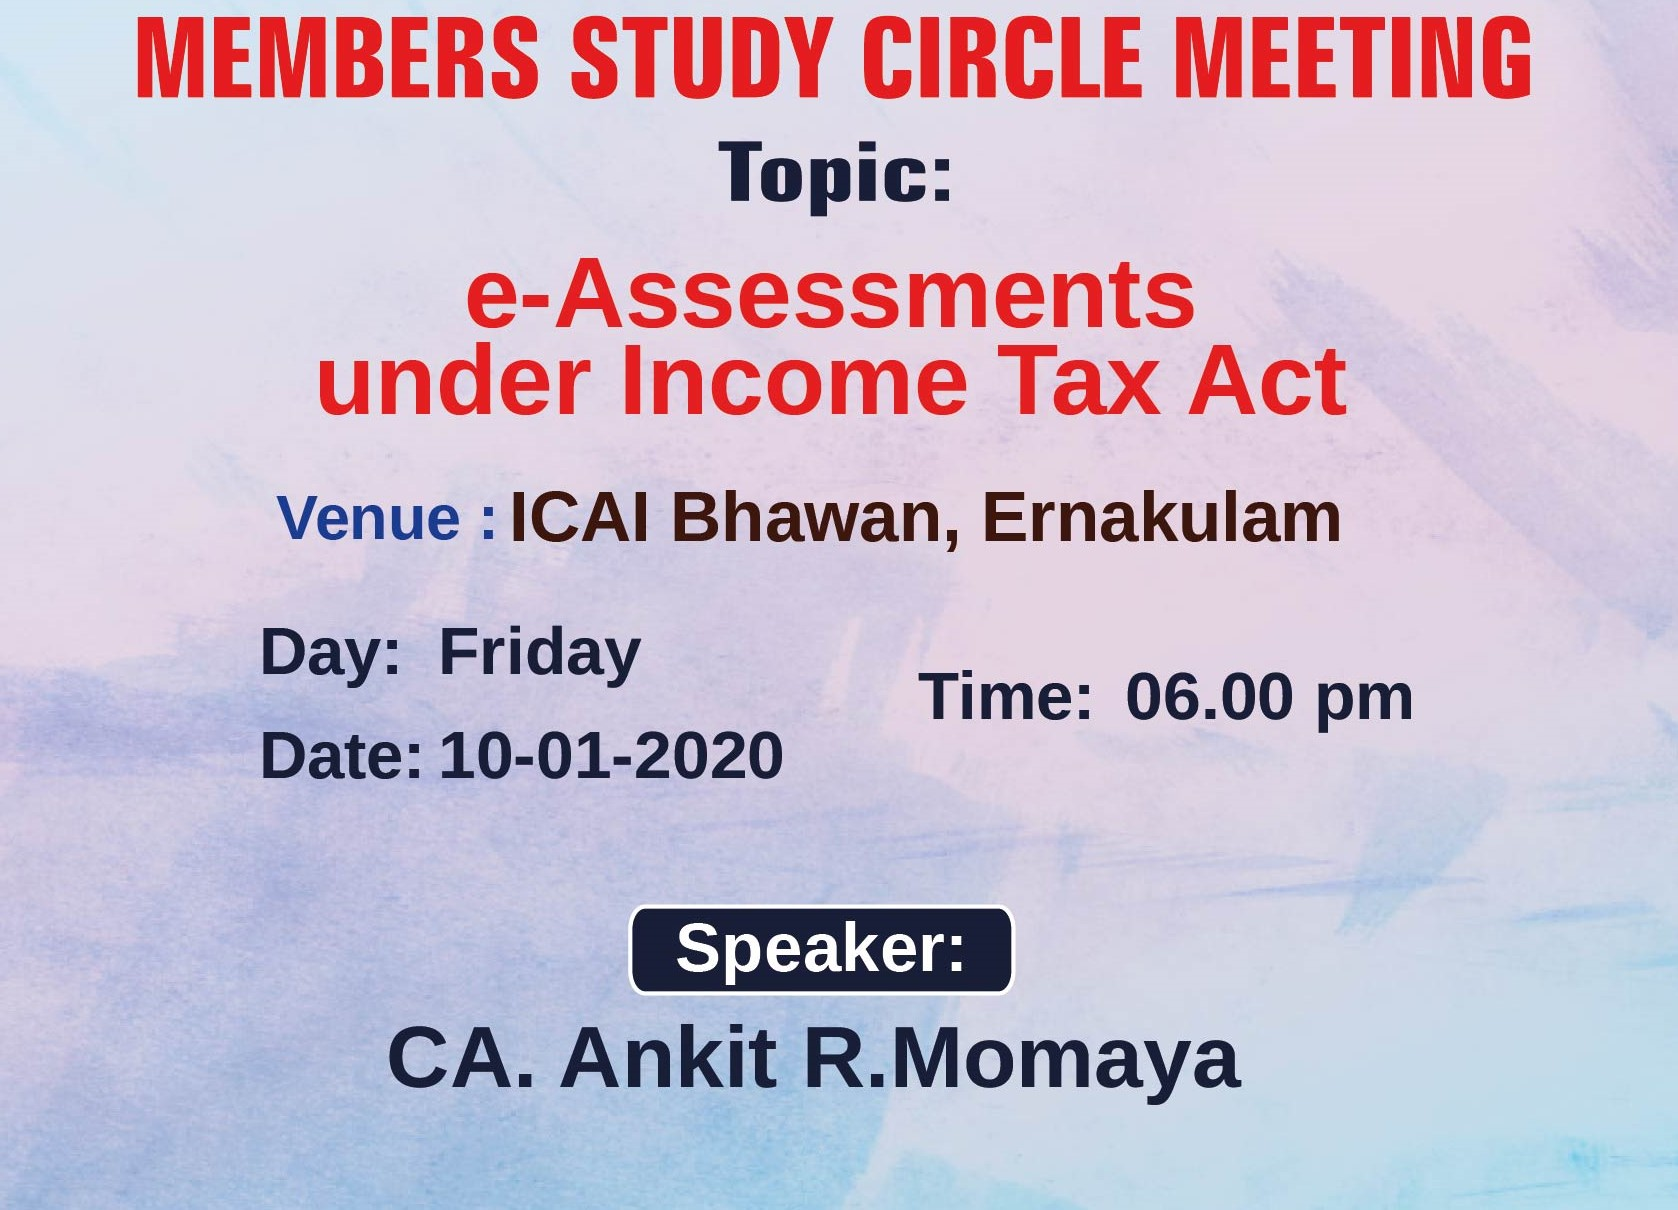 Members Study Circle Meeting on  e-Assessments under Income Tax Act